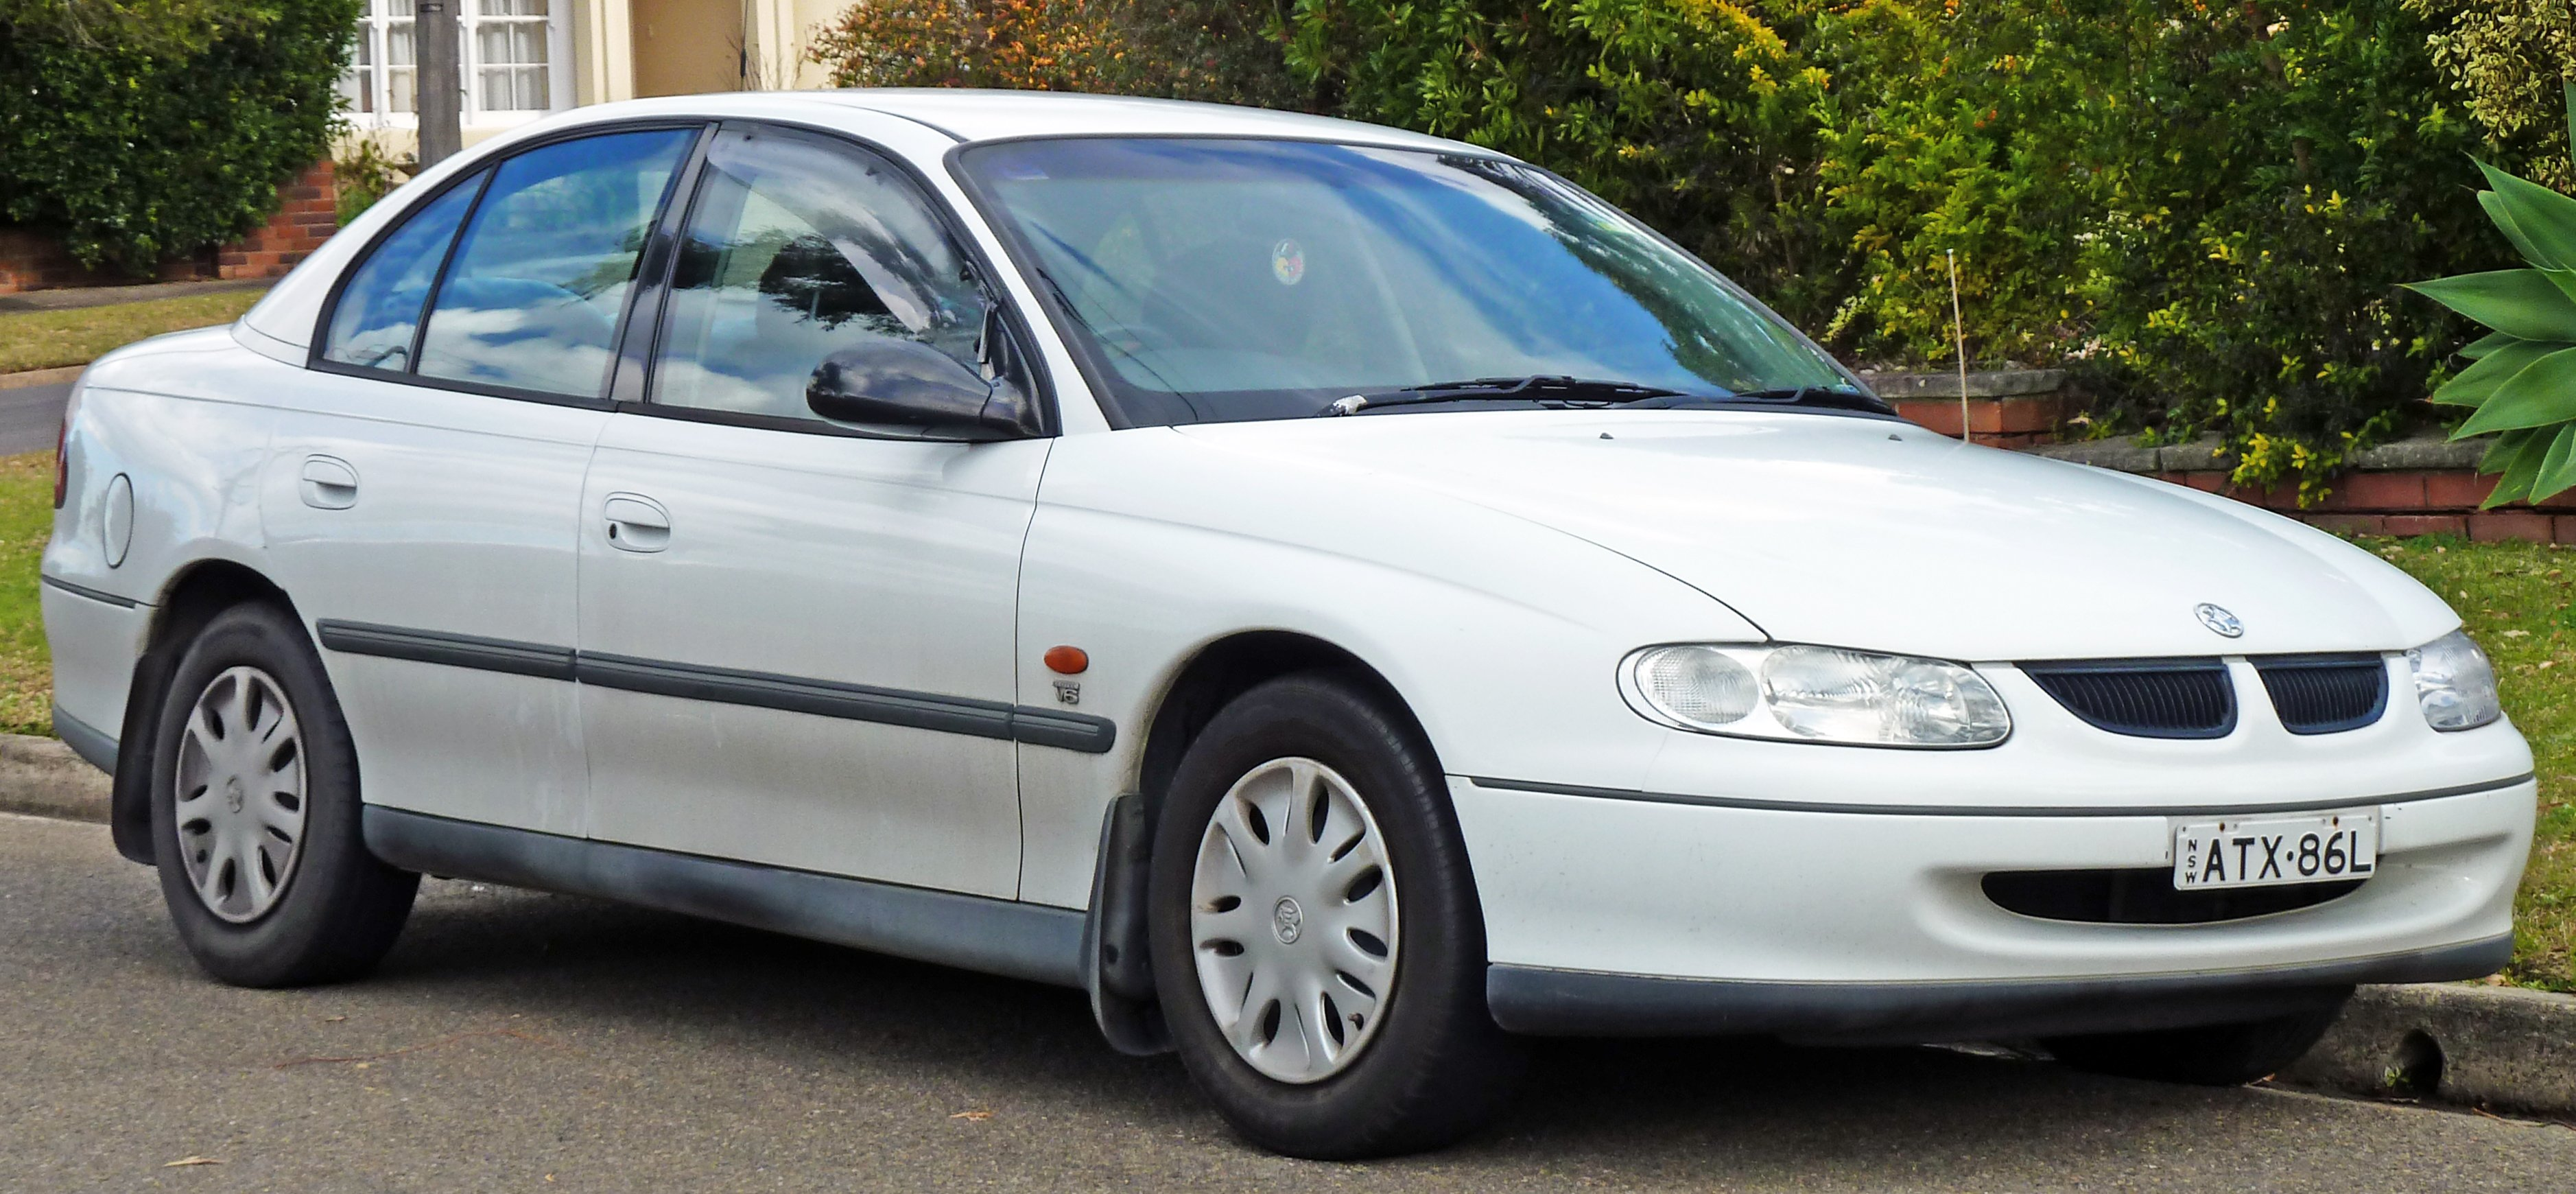 holden commodore wagon (vt) 1999 #9